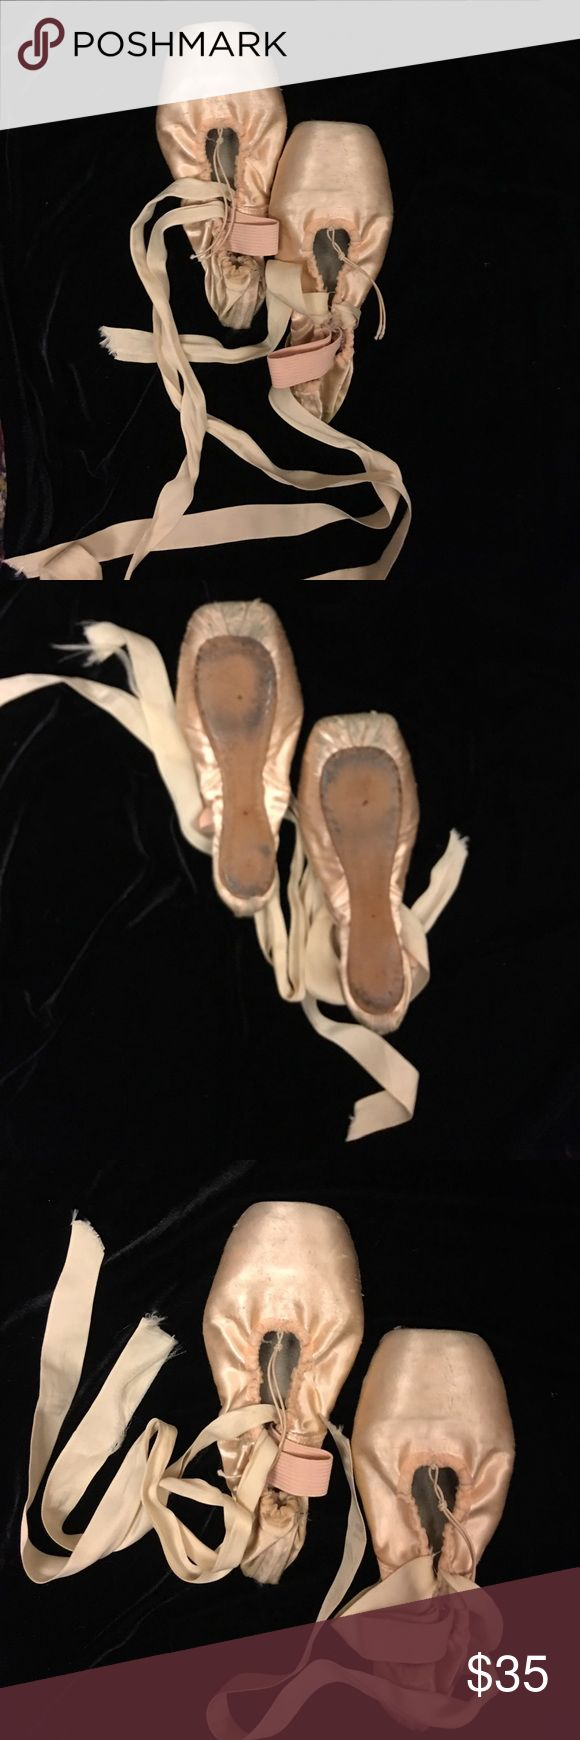 Authentic Ballerina slippers well loved young girl Authentic BALLERINA slippers for a young girl... WELL LOVED Light pink ... fits young girl 12 years up to 18 L.A.M.B. Costumes Dance